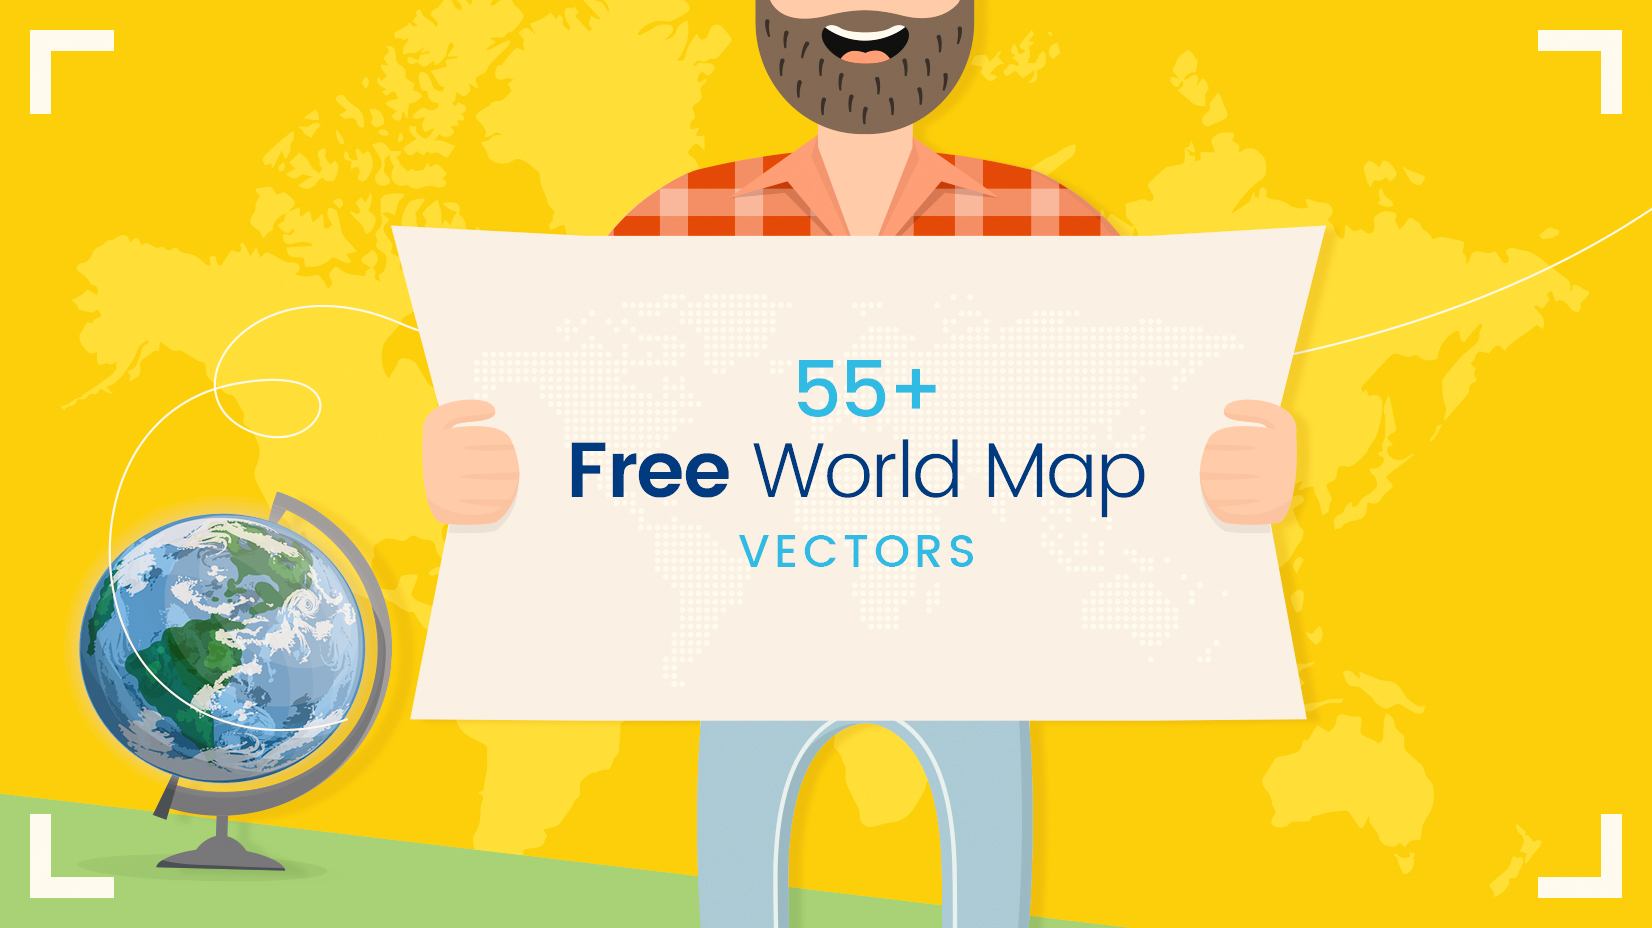 Free World Map Vector Collection: Over 55 Different Designs